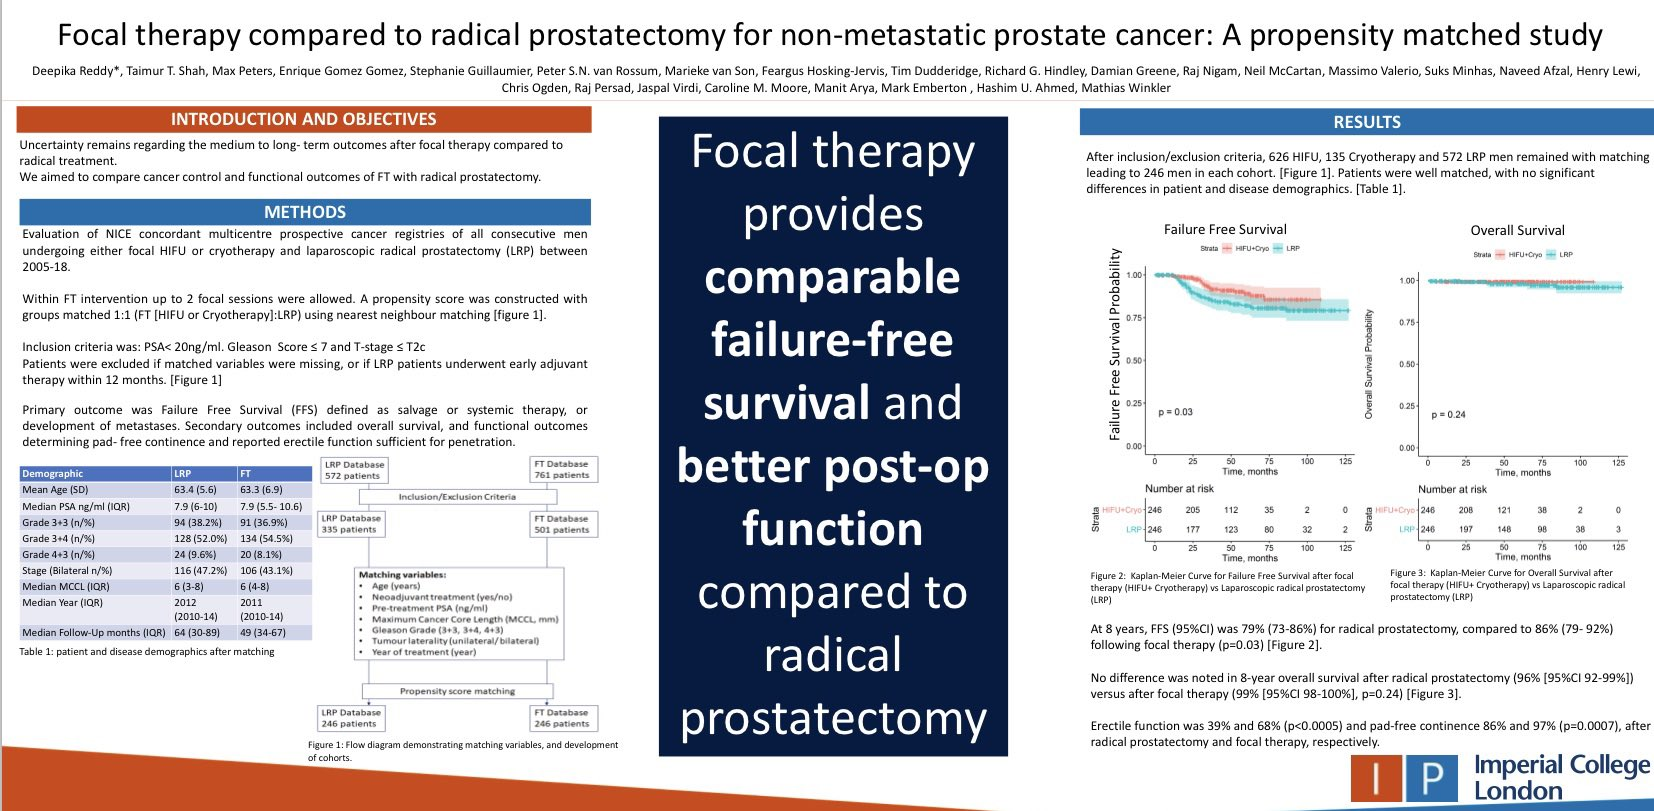 Imperial College Focal therapy vs radical prostatectomy study